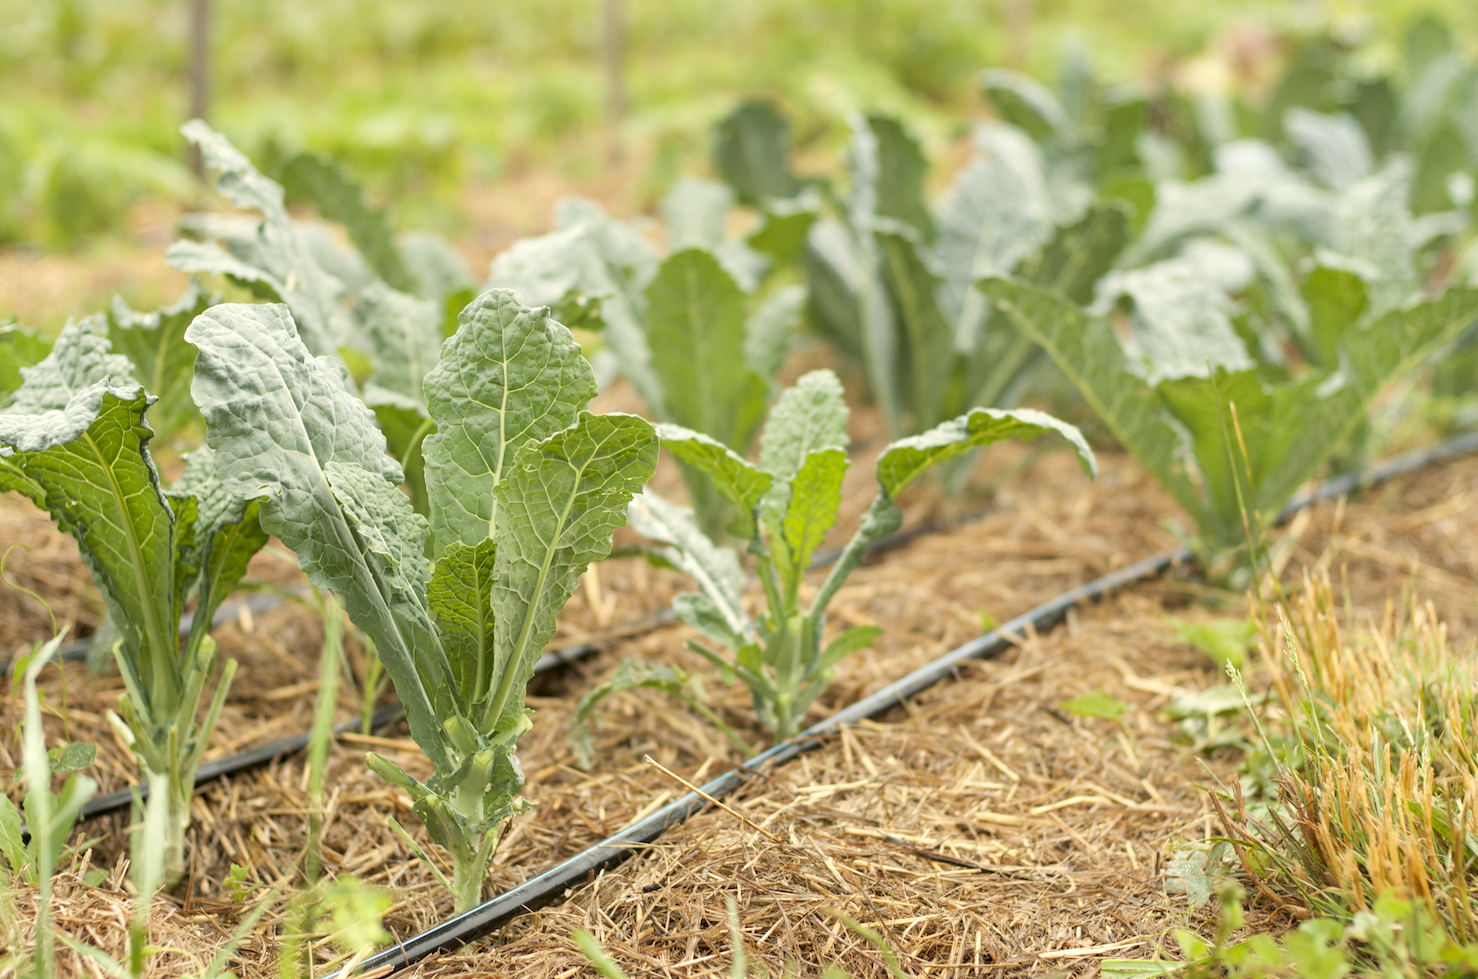 Tuscan kale beds, after the mature outer leaves have been trimmed and bundled for sale at the Co-op.